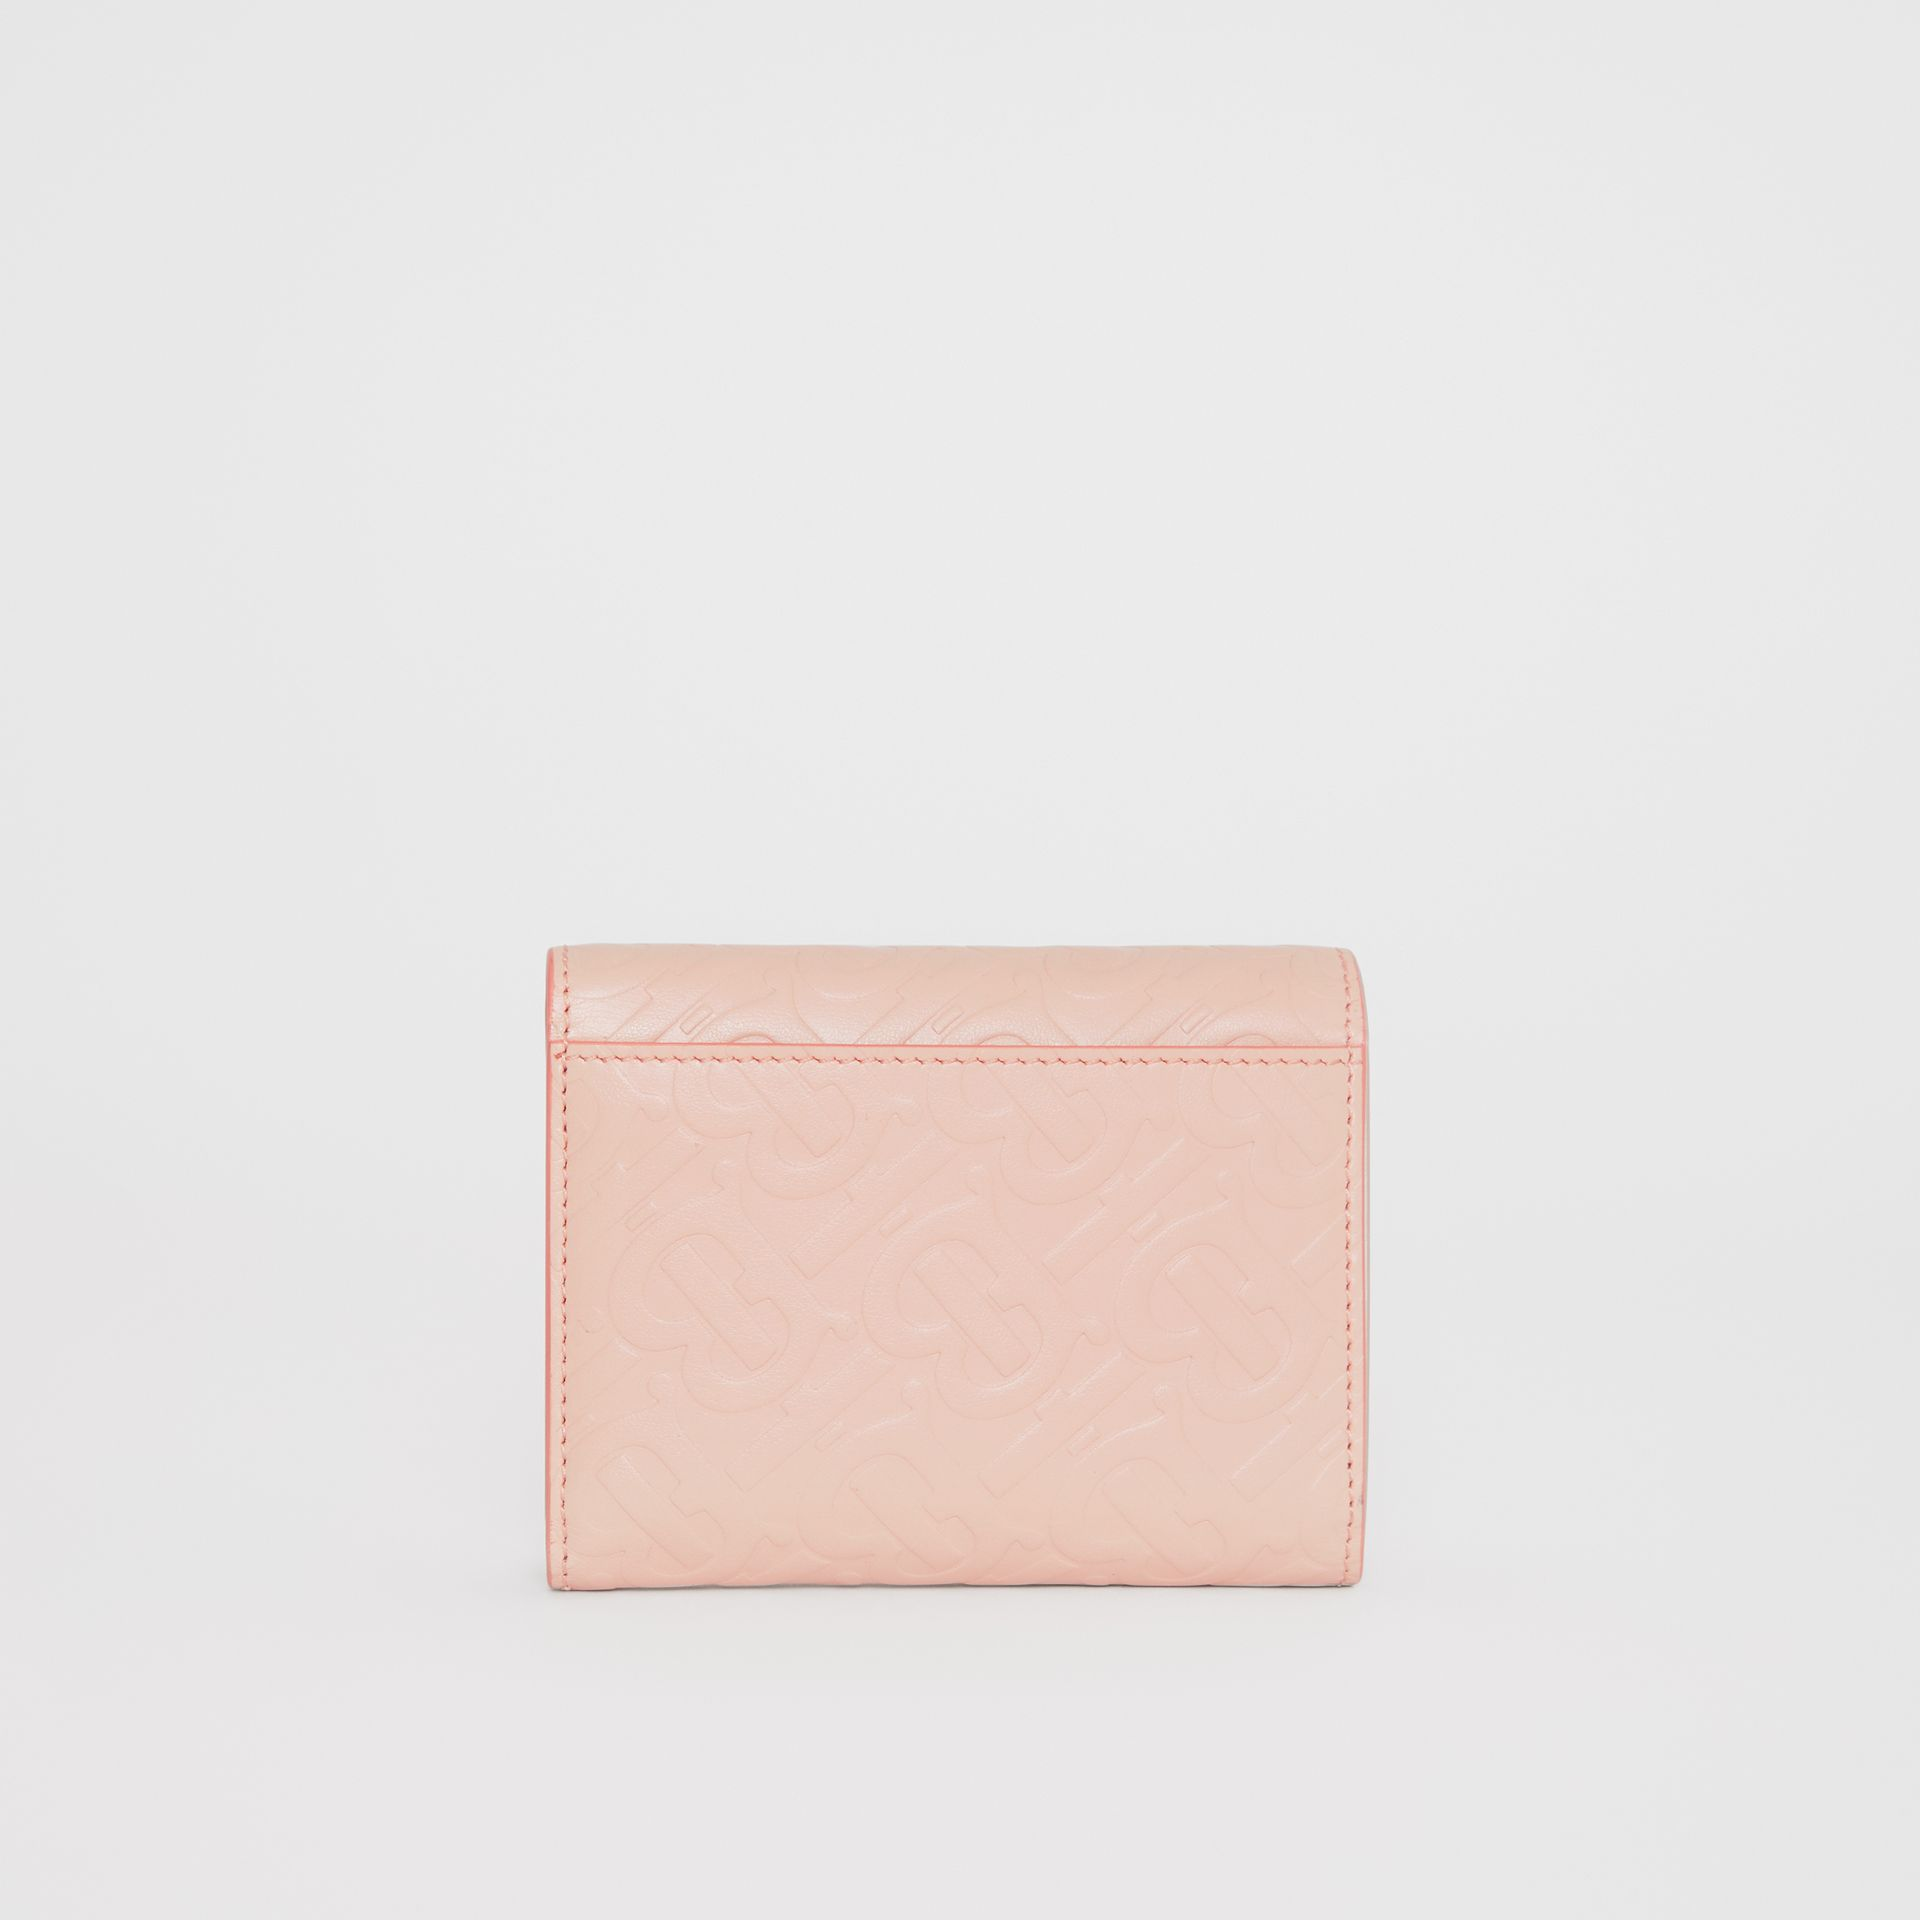 Small Monogram Leather Folding Wallet in Rose Beige | Burberry Hong Kong S.A.R - gallery image 4